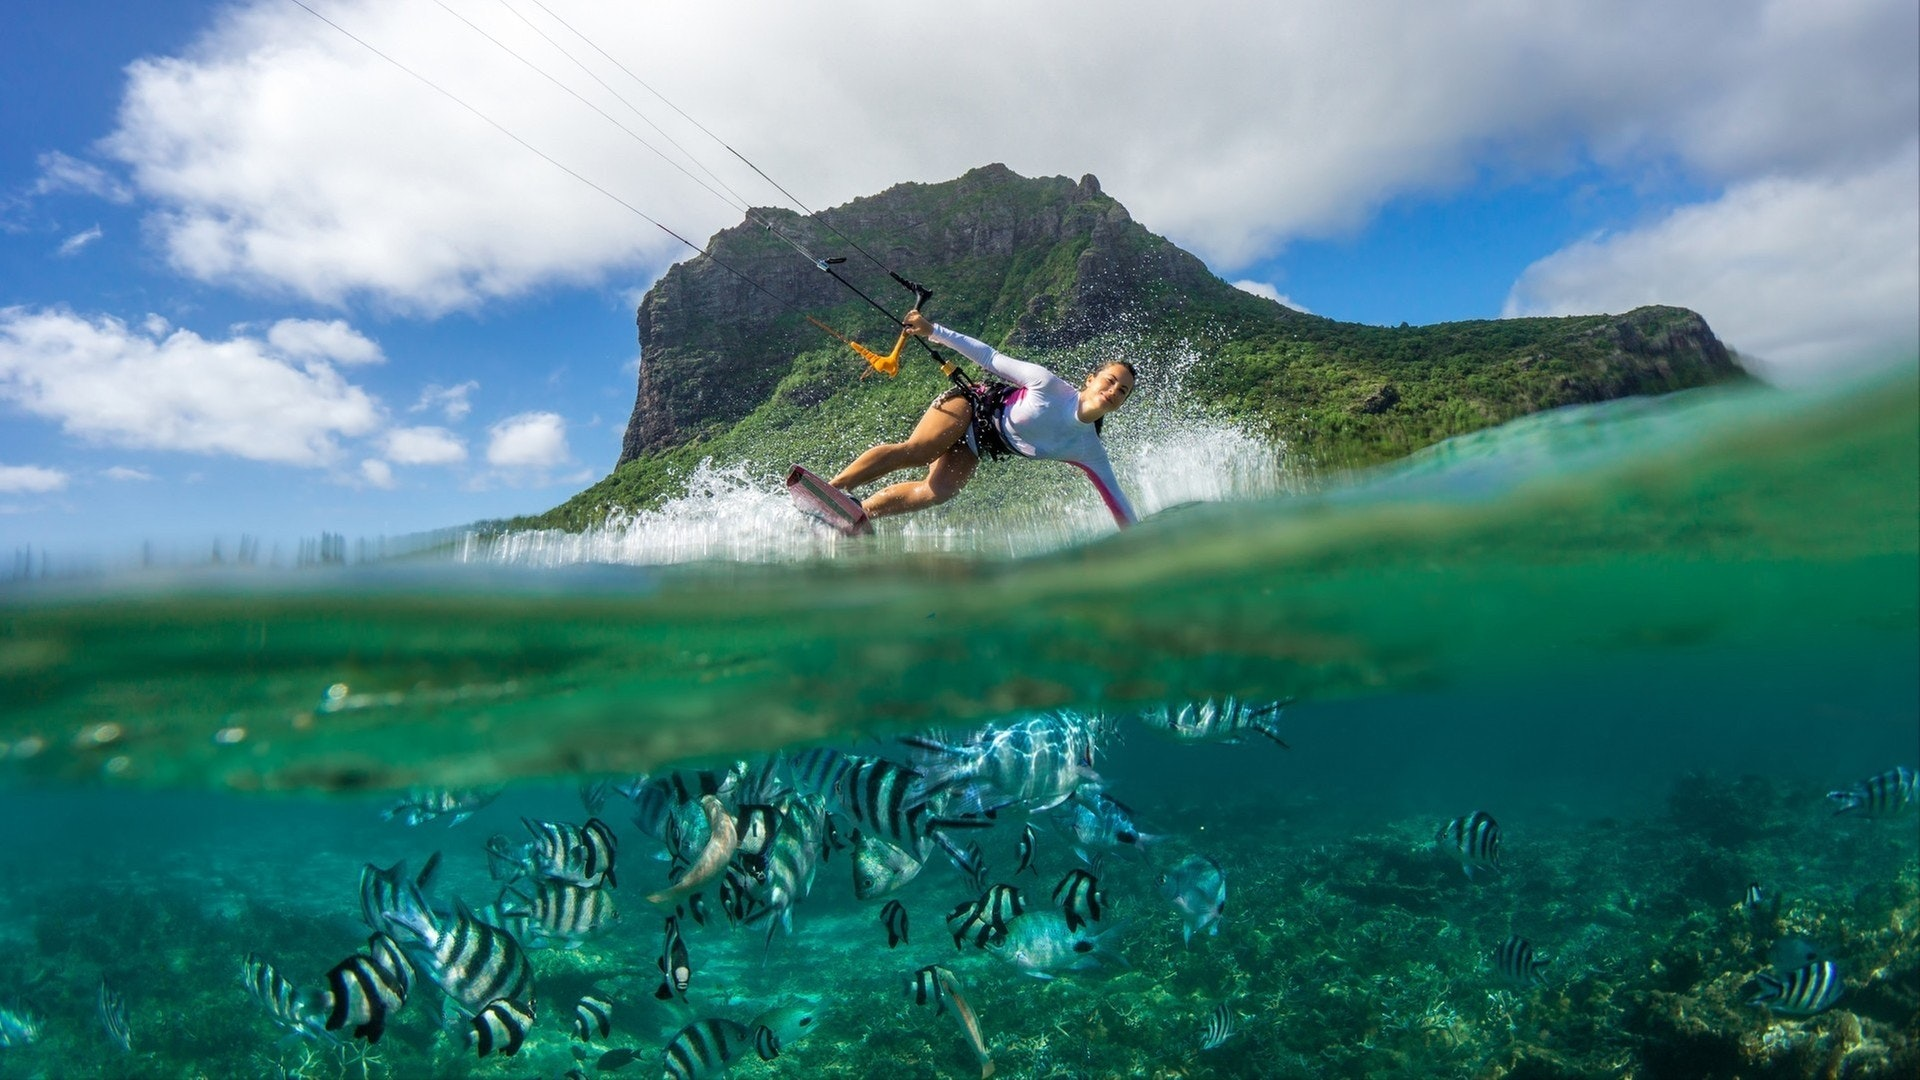 Kiting in the clear waters of the Indian Ocean in Mauritius